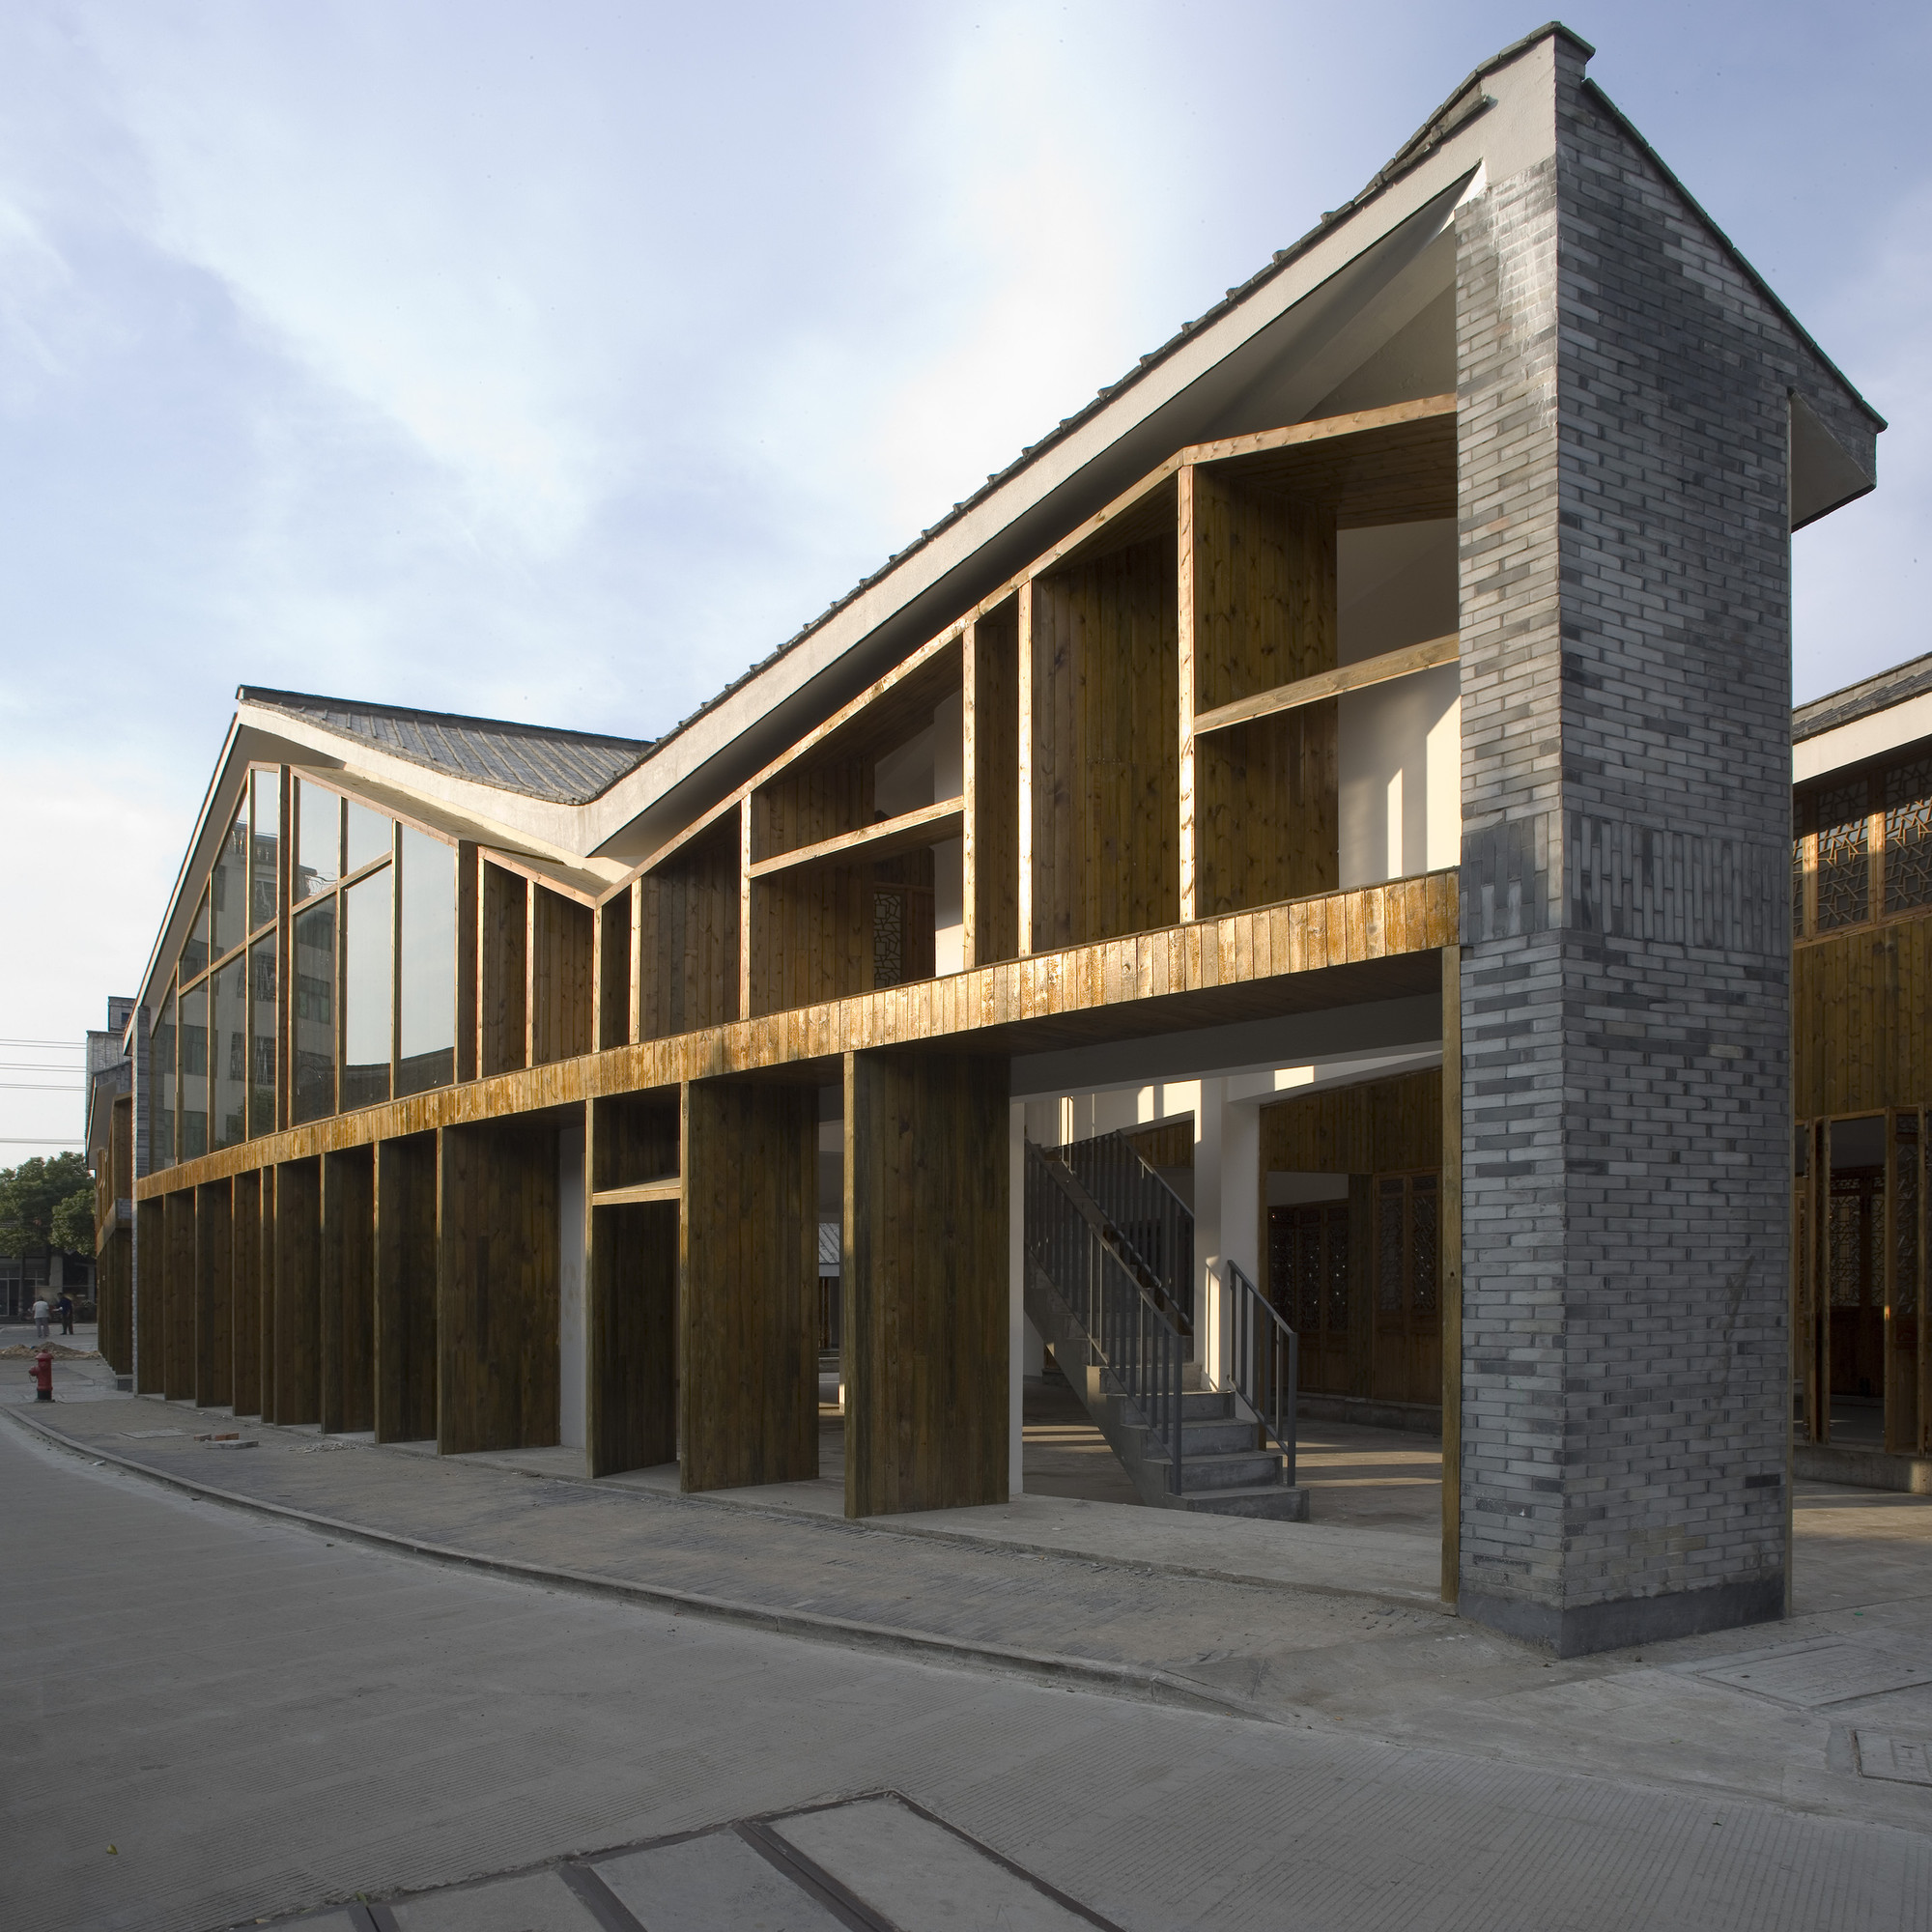 Park Block Renovation, Luqiao Old Town / TM Studio, Courtesy of TM Studio